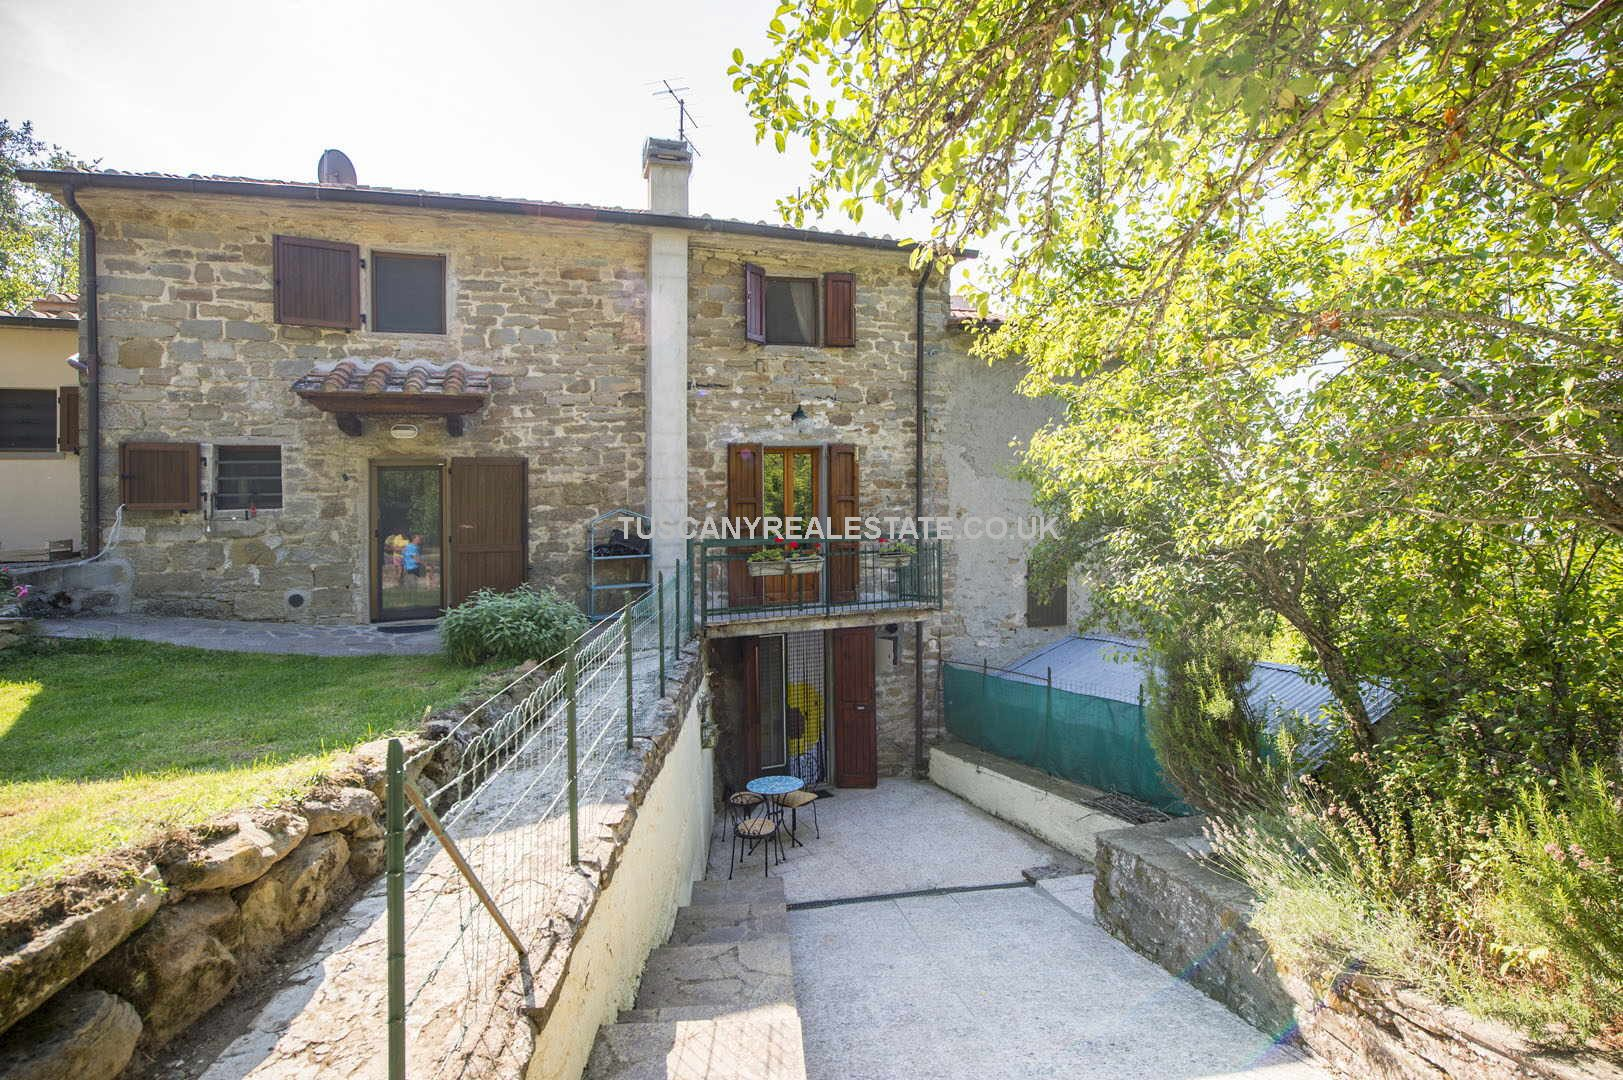 Cheap Sansepolcro 2 bedroomed townhouse property